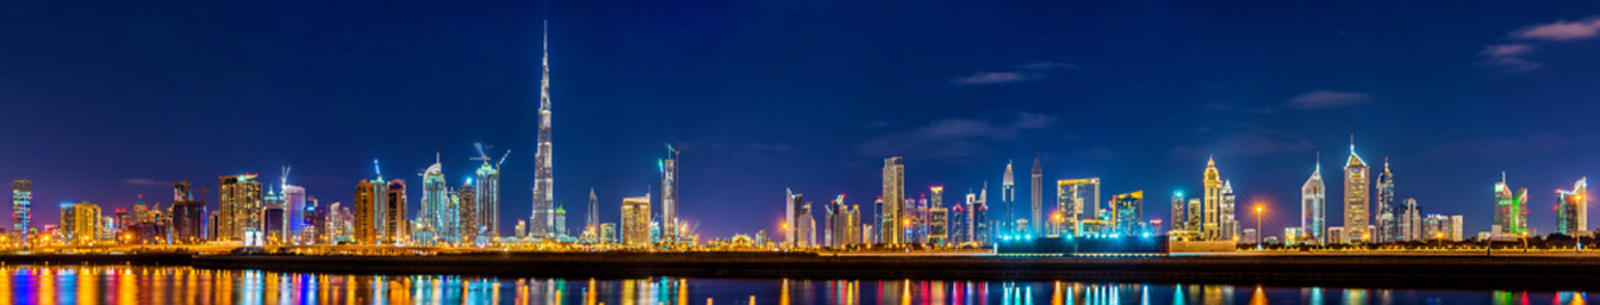 Swirl Love Story Dubai Panoramic